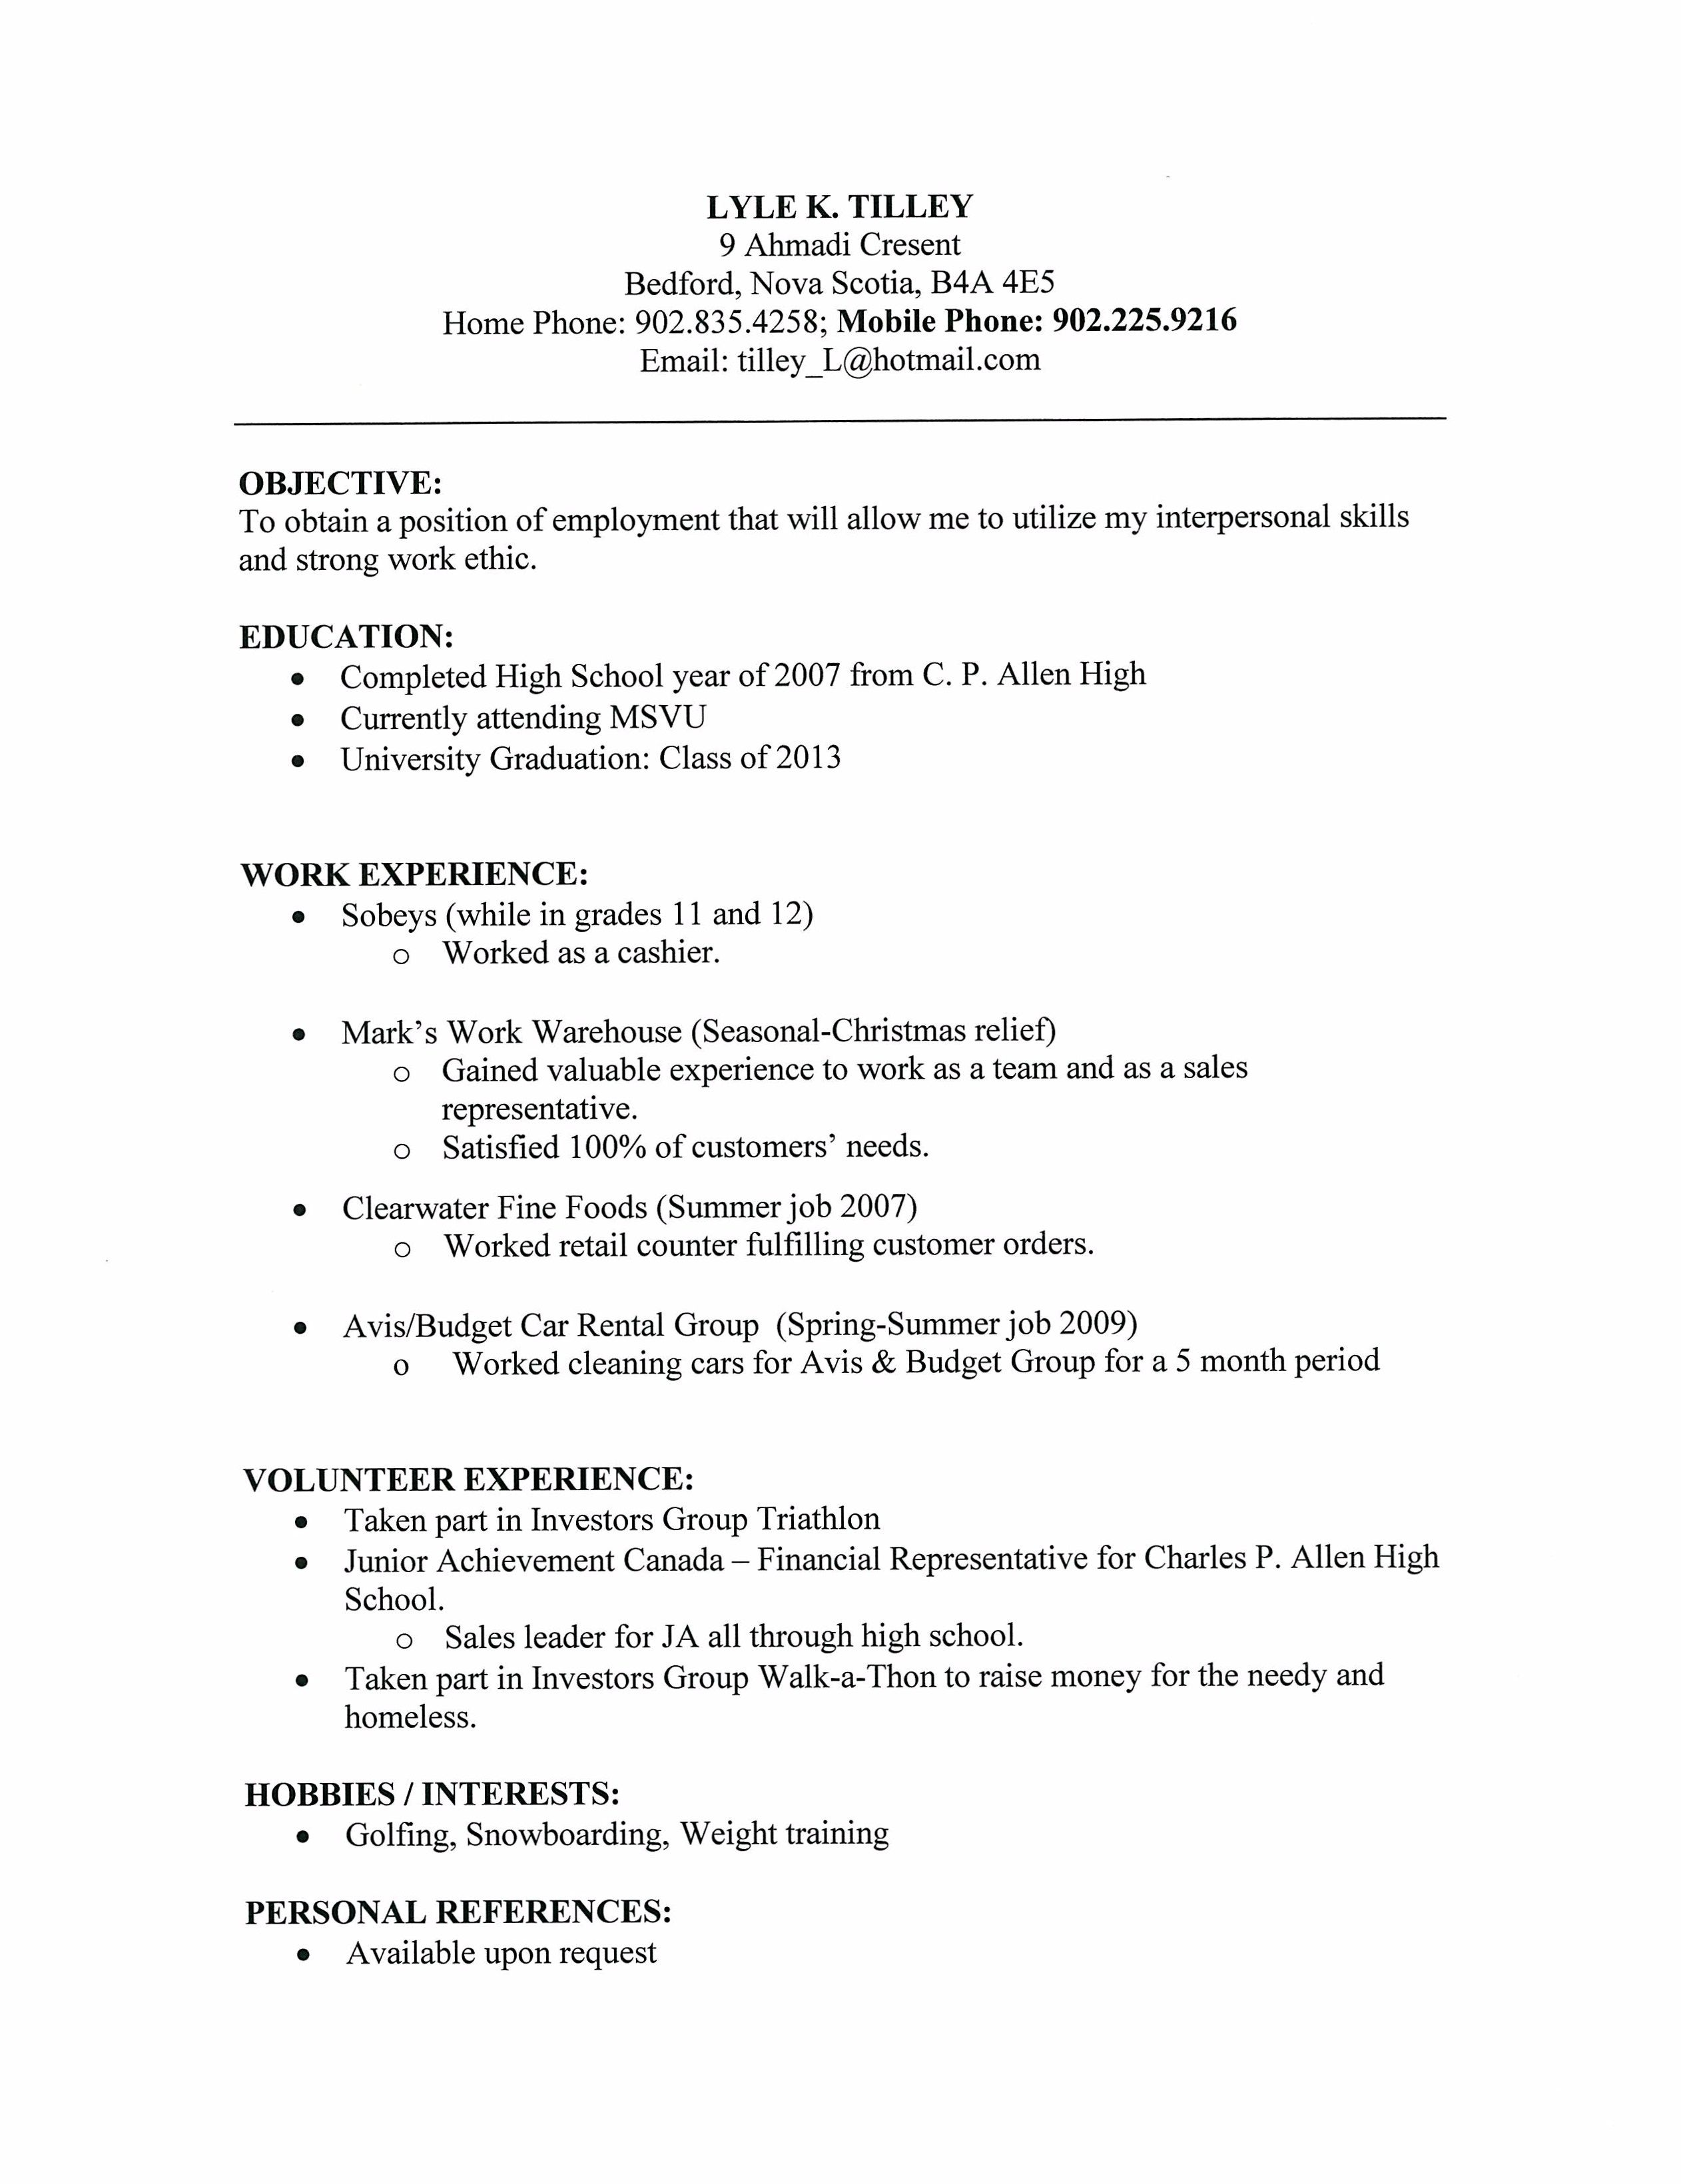 Who Do I Address My Cover Letter To New The Cover Letter Tips Resume Template Letters For High School Inspiration Design